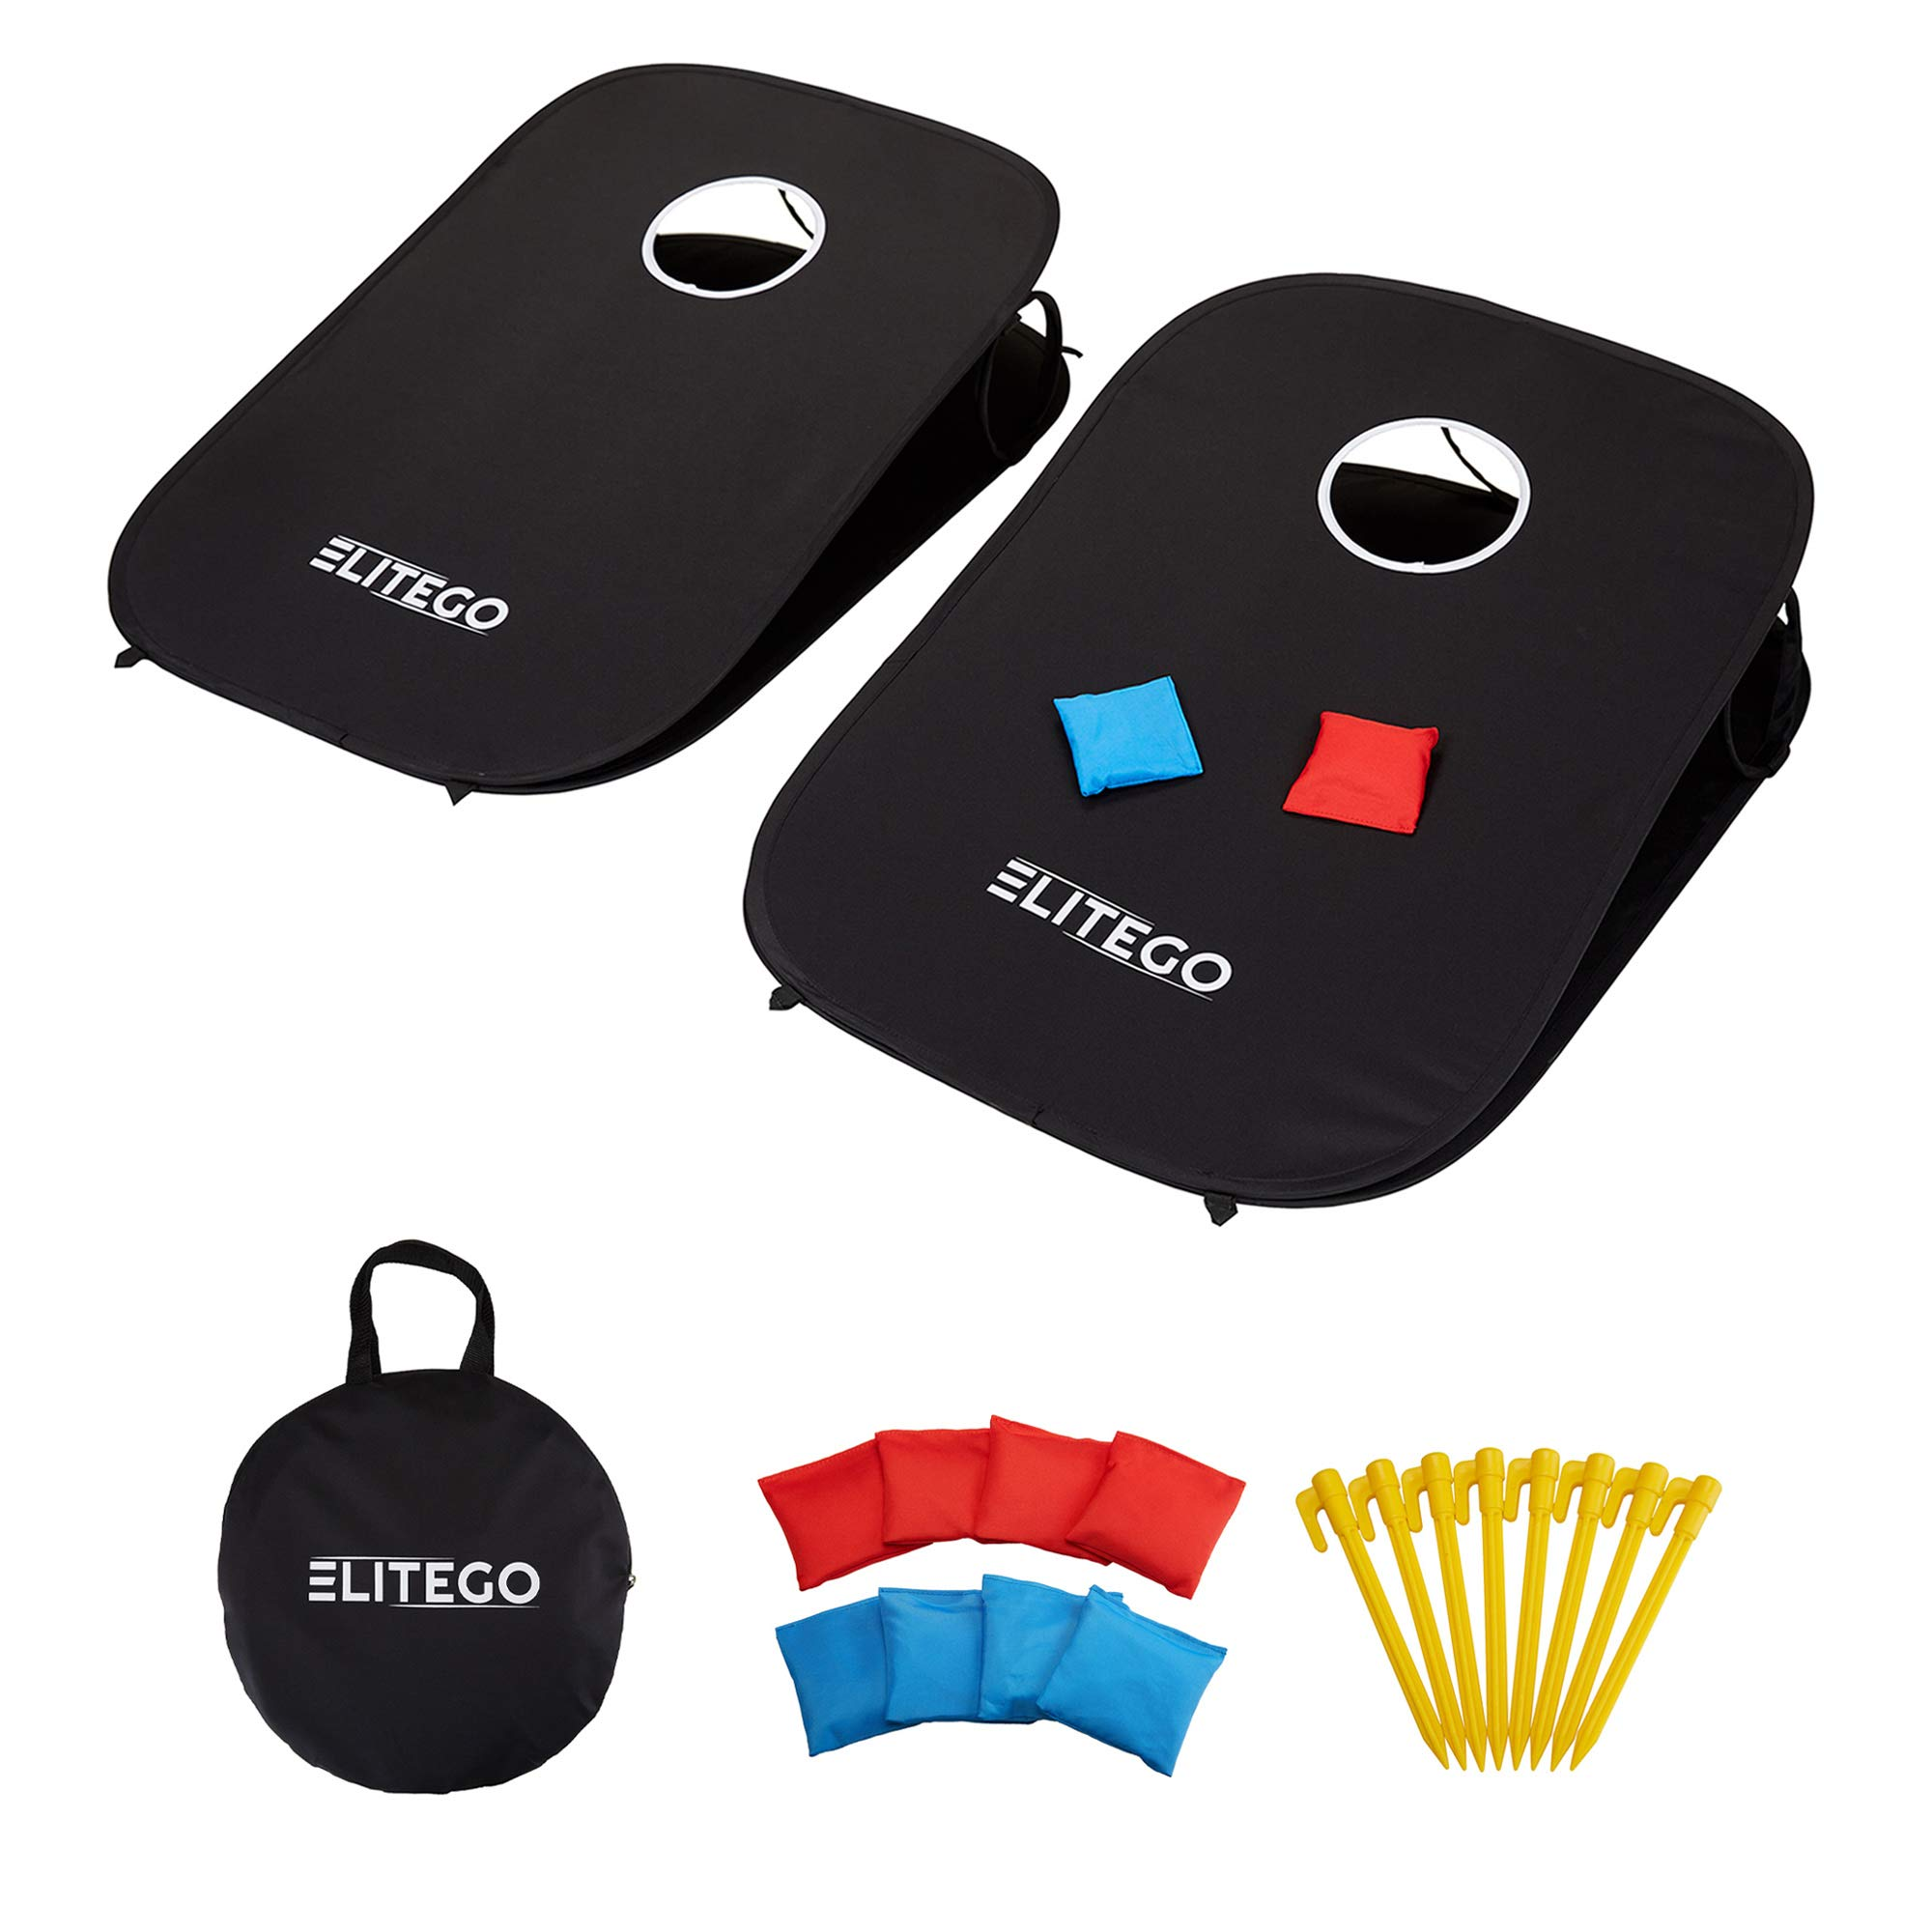 EliteGo Collapsible Portable Cornhole Boards Game Set with 8 Cornhole Bean Bags - (3 x 2 feet) (Black)